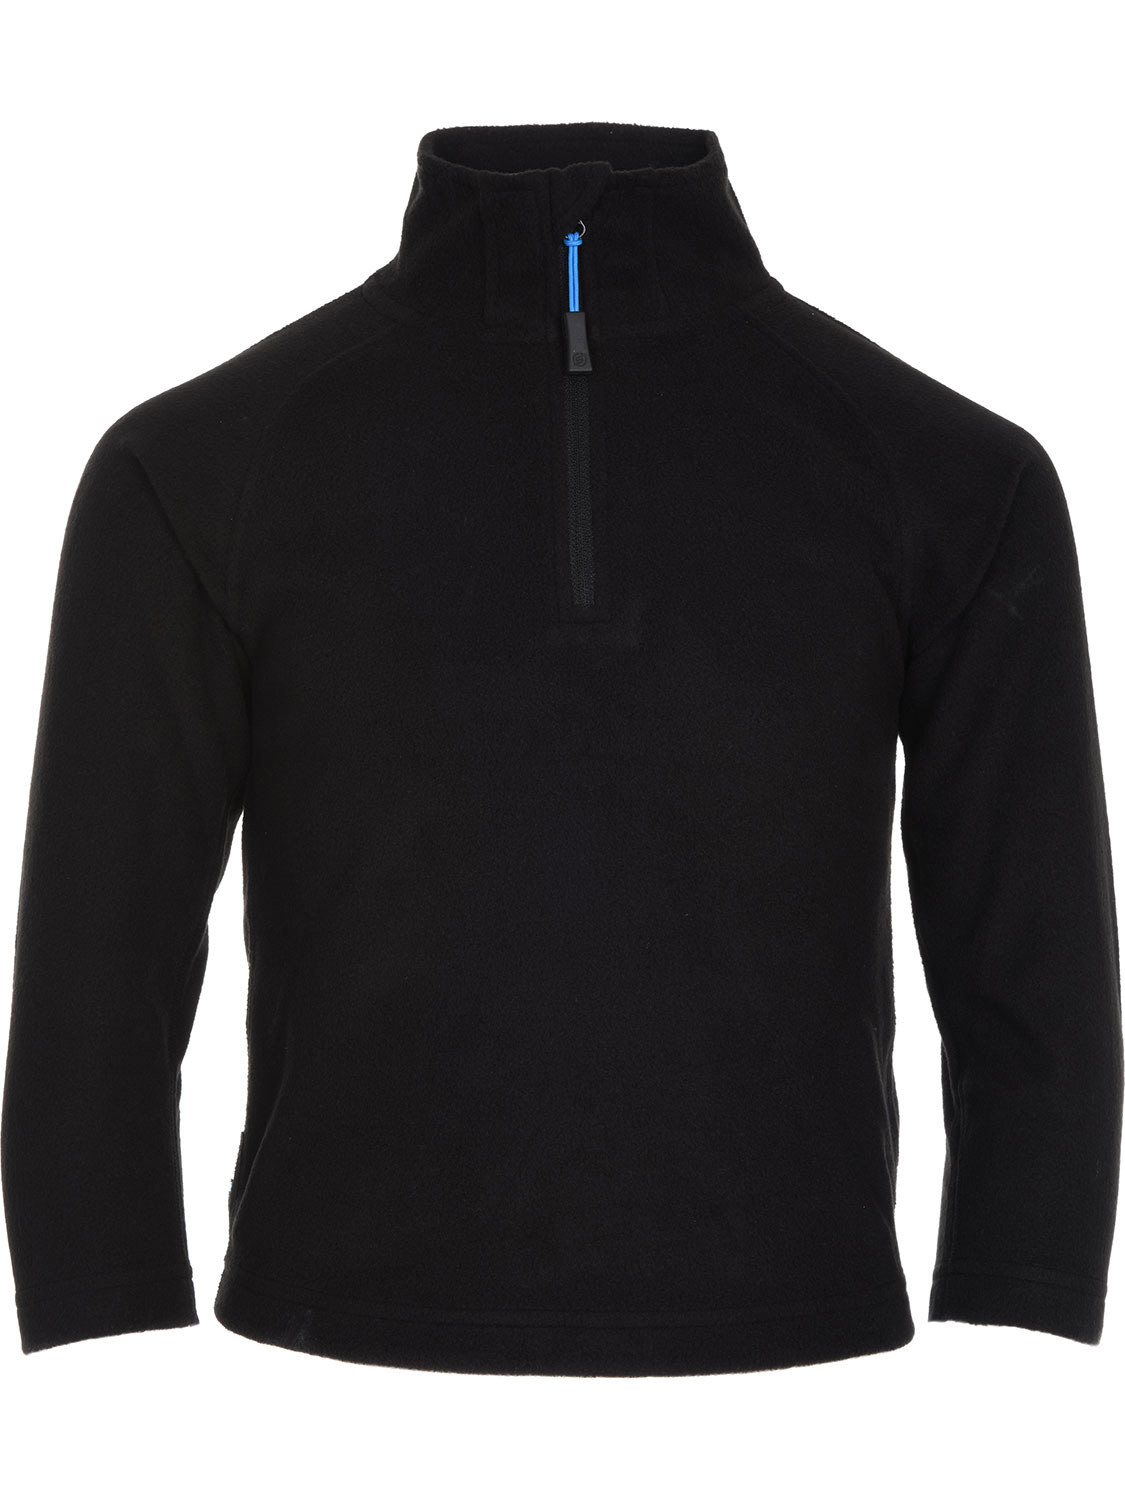 Thermal Zip Micro Fleece